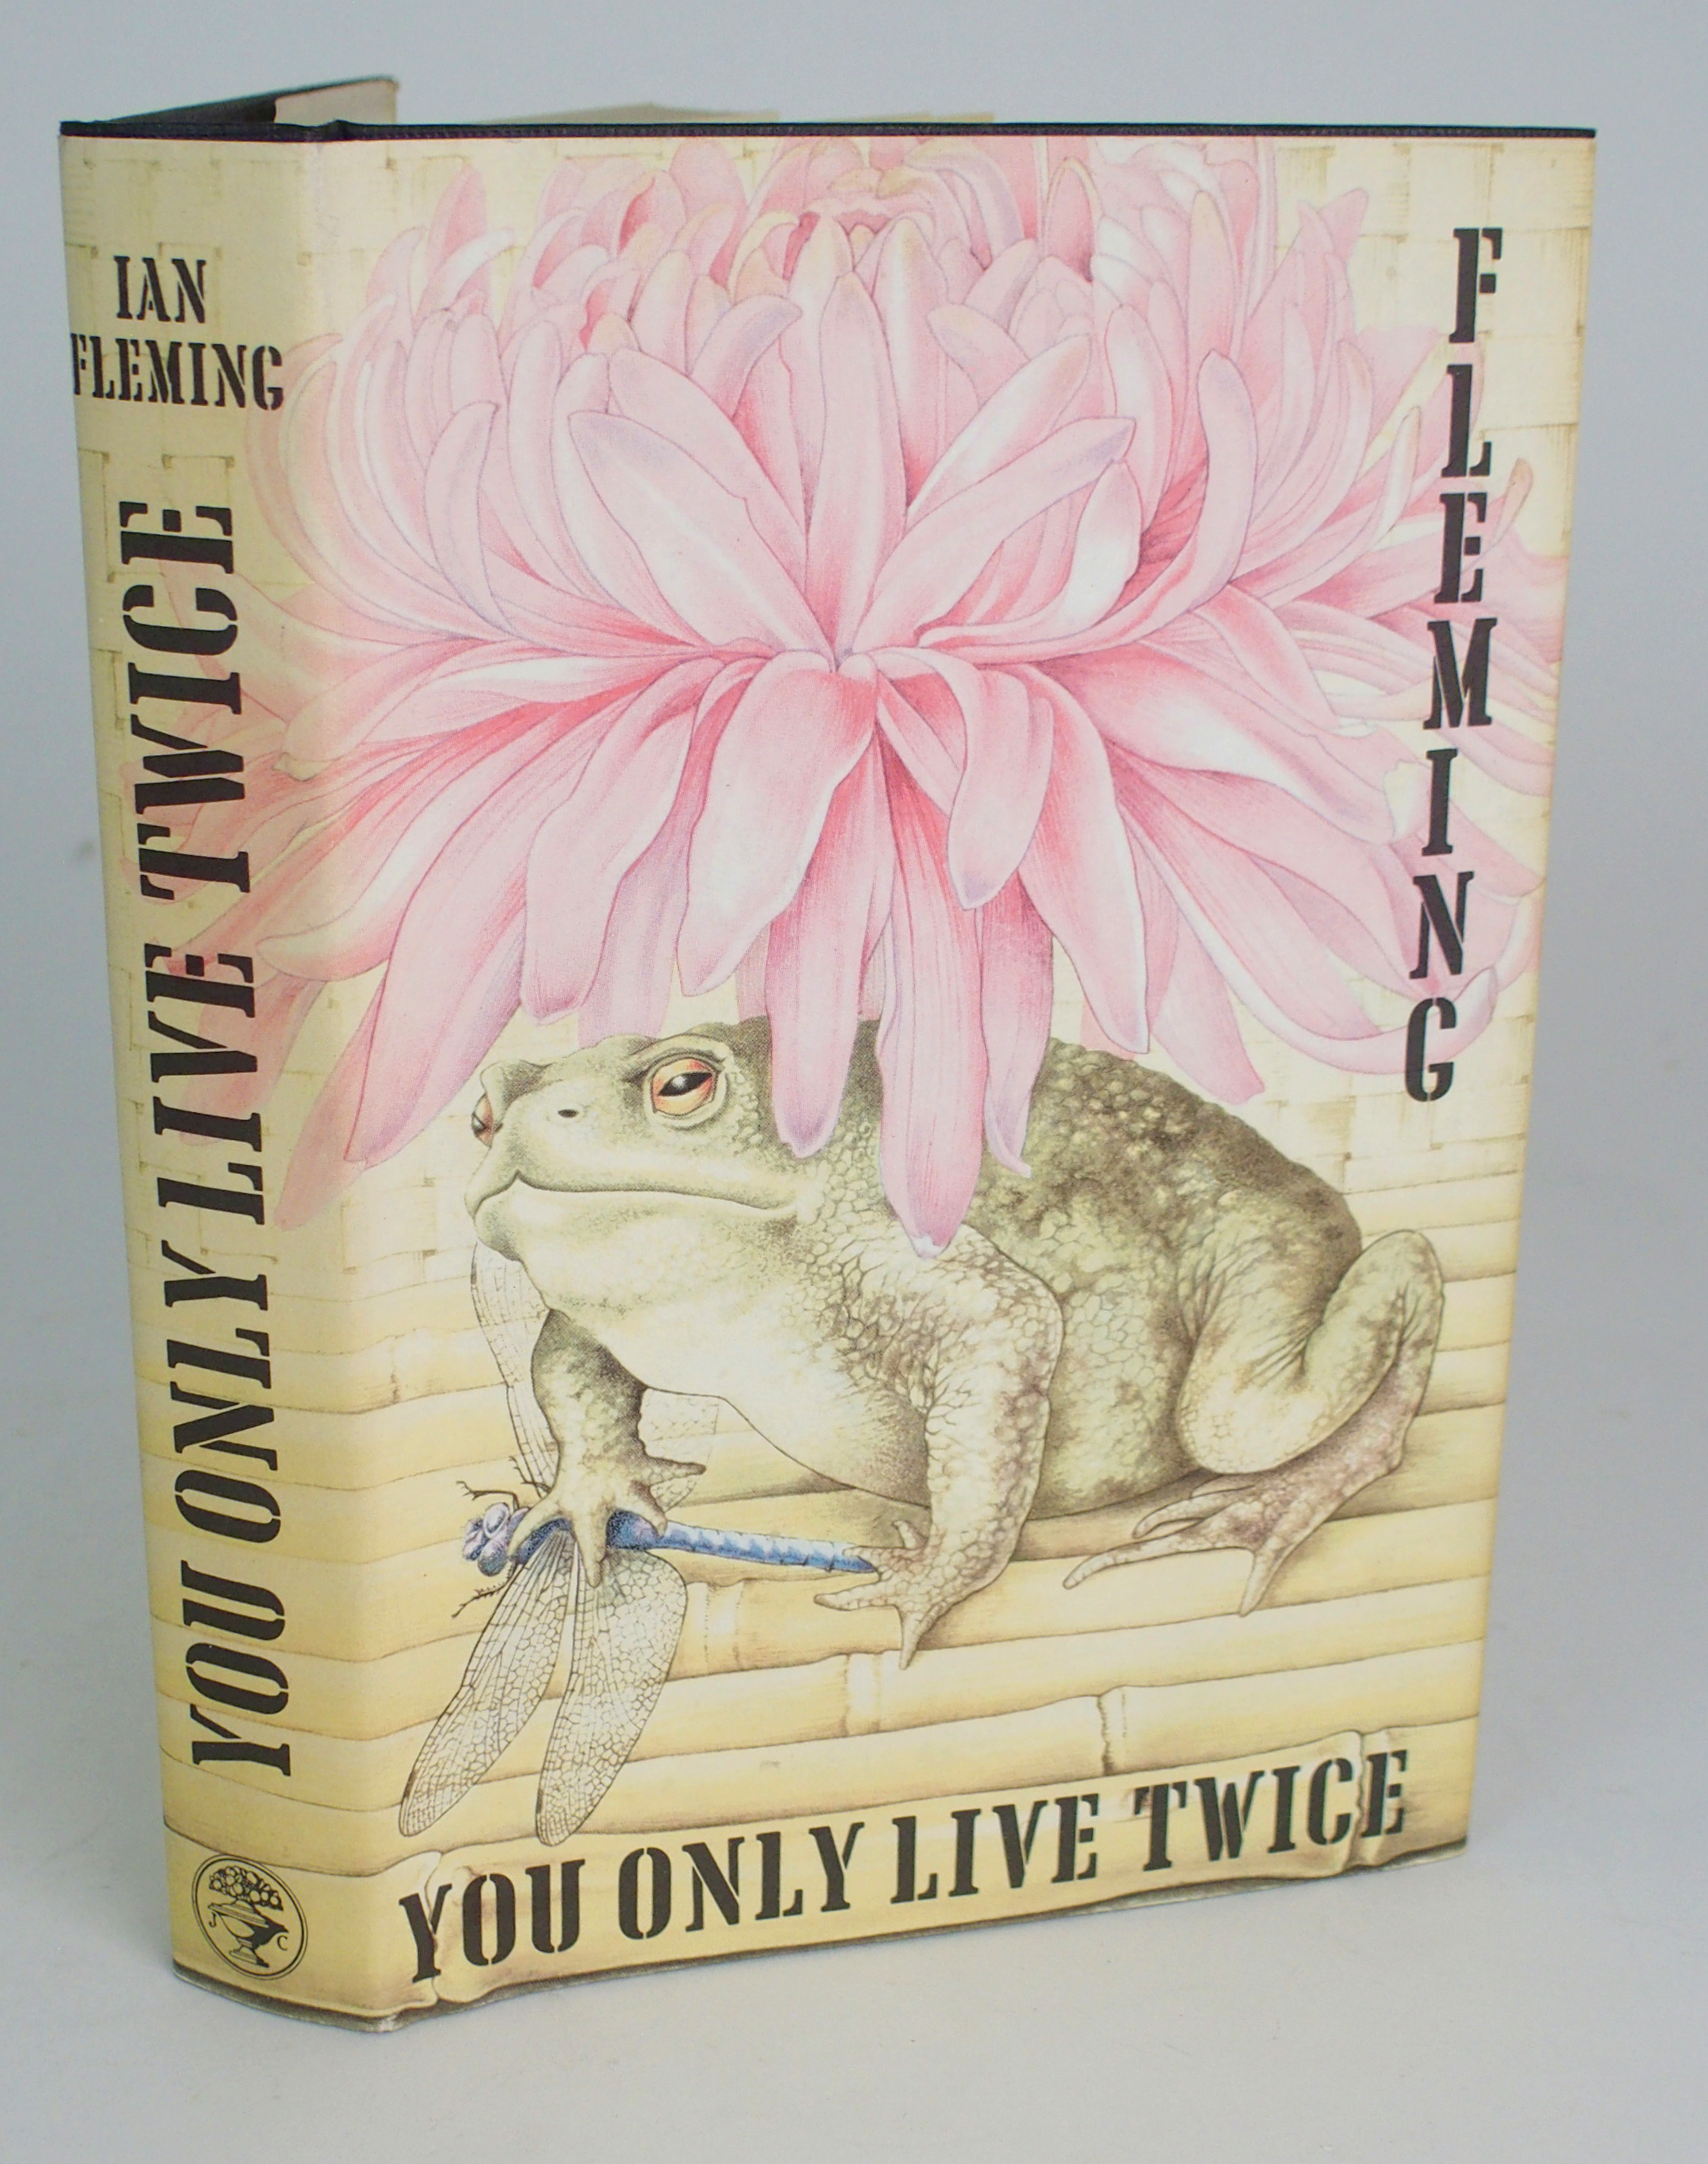 IAN FLEMING 'YOU ONLY LIVE TWICE' 1st edition 1964, unclipped with original dust jacket, published